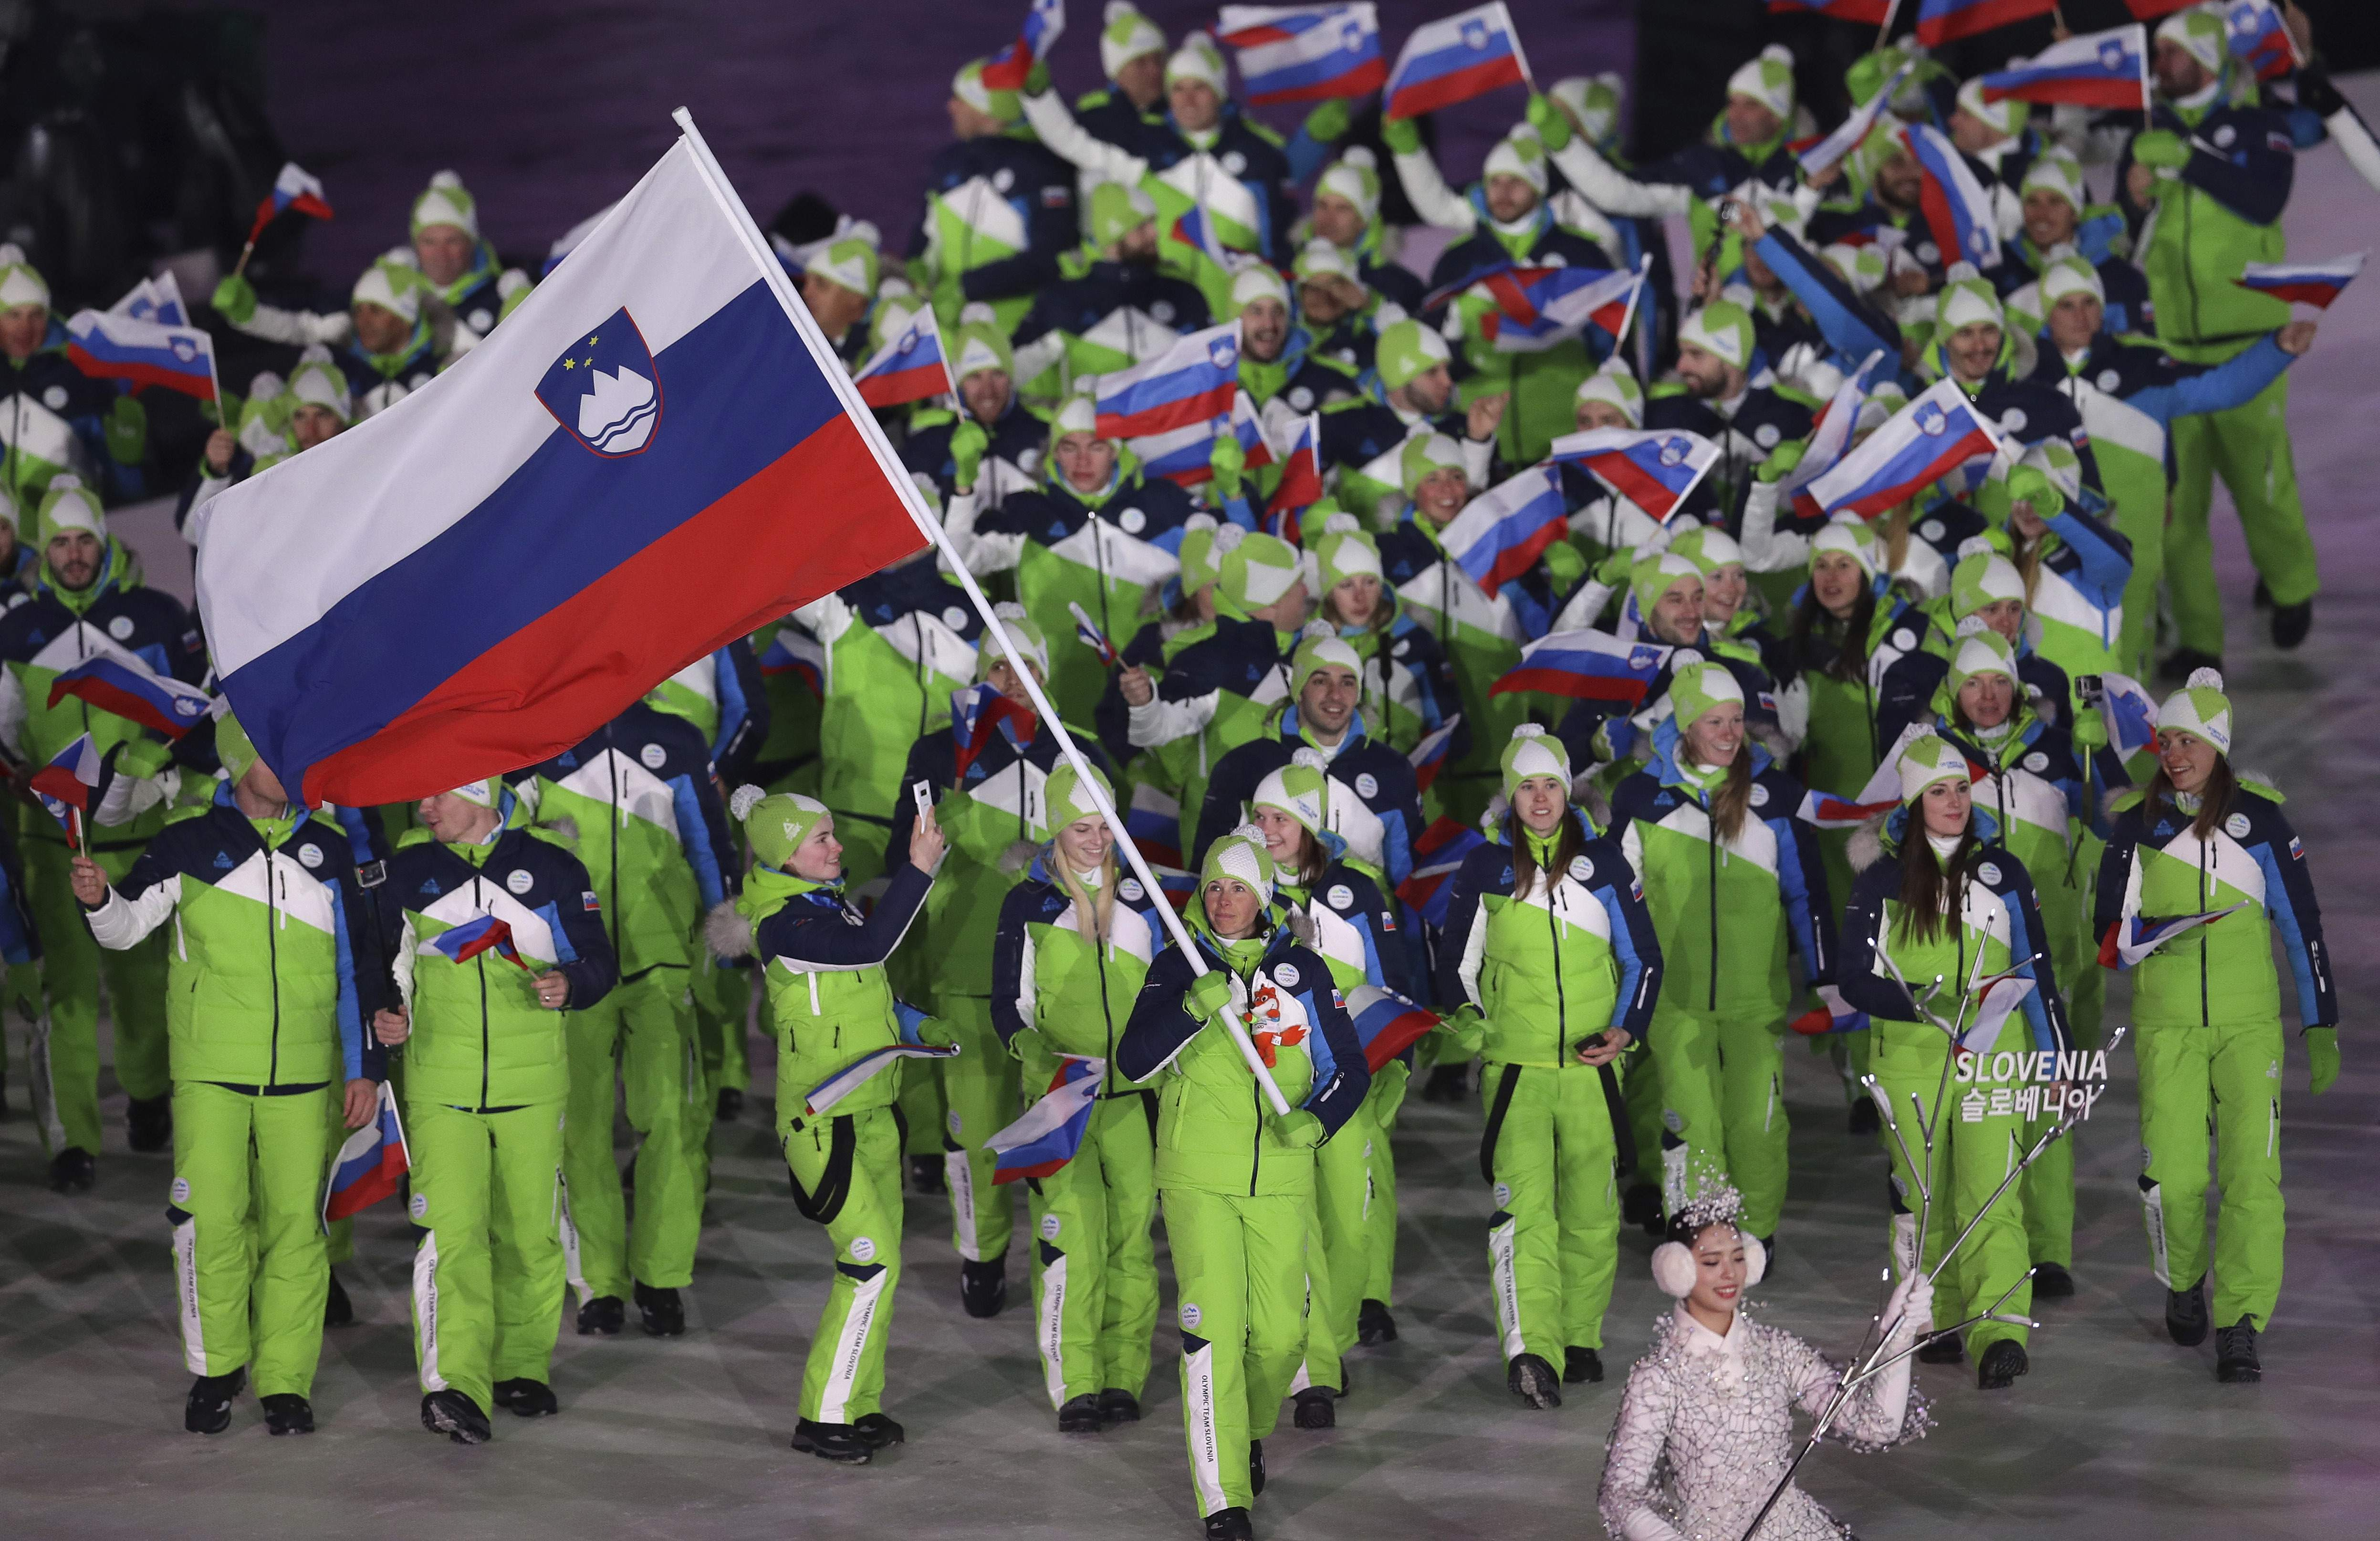 Vesna Fabjan carries the flag of Slovenia during the opening ceremony of the 2018 Winter Olympics in Pyeongchang, South Korea, Friday, Feb. 9, 2018. (AP Photo/Michael Sohn)